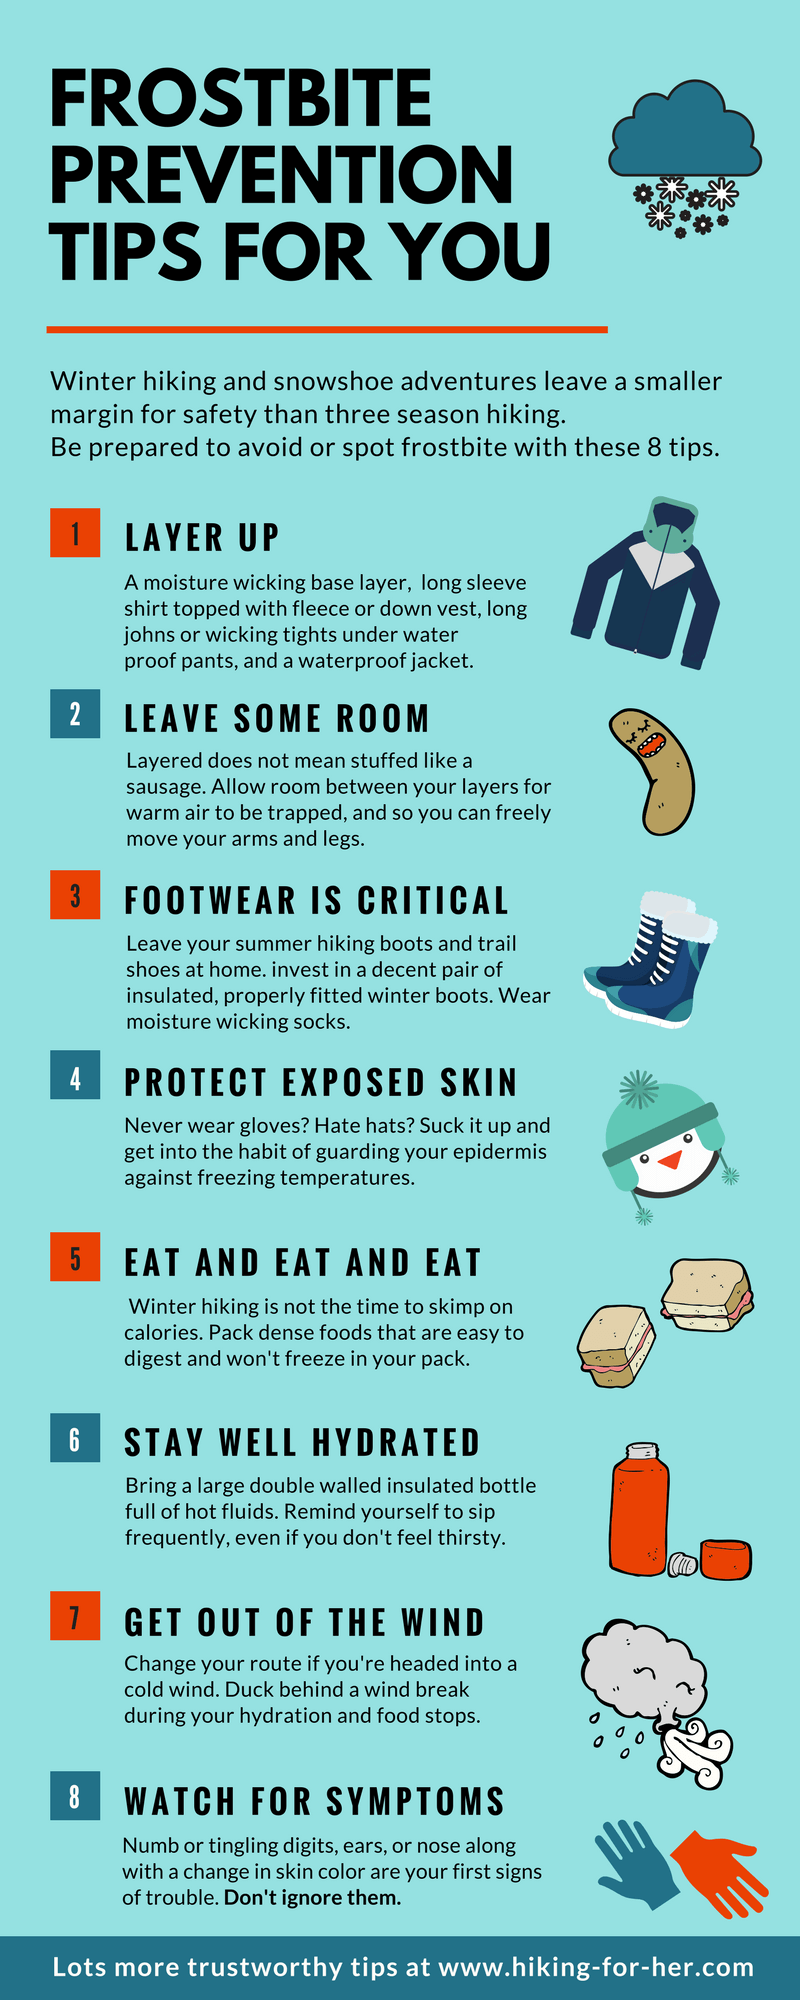 Frostbite prevention tips for hikers in Hiking For Her's infographic #frostbite #preventfrostbite #hikinginfographic #outdoorsafety #coldweatherhiking #hikingtips #backpackingtips